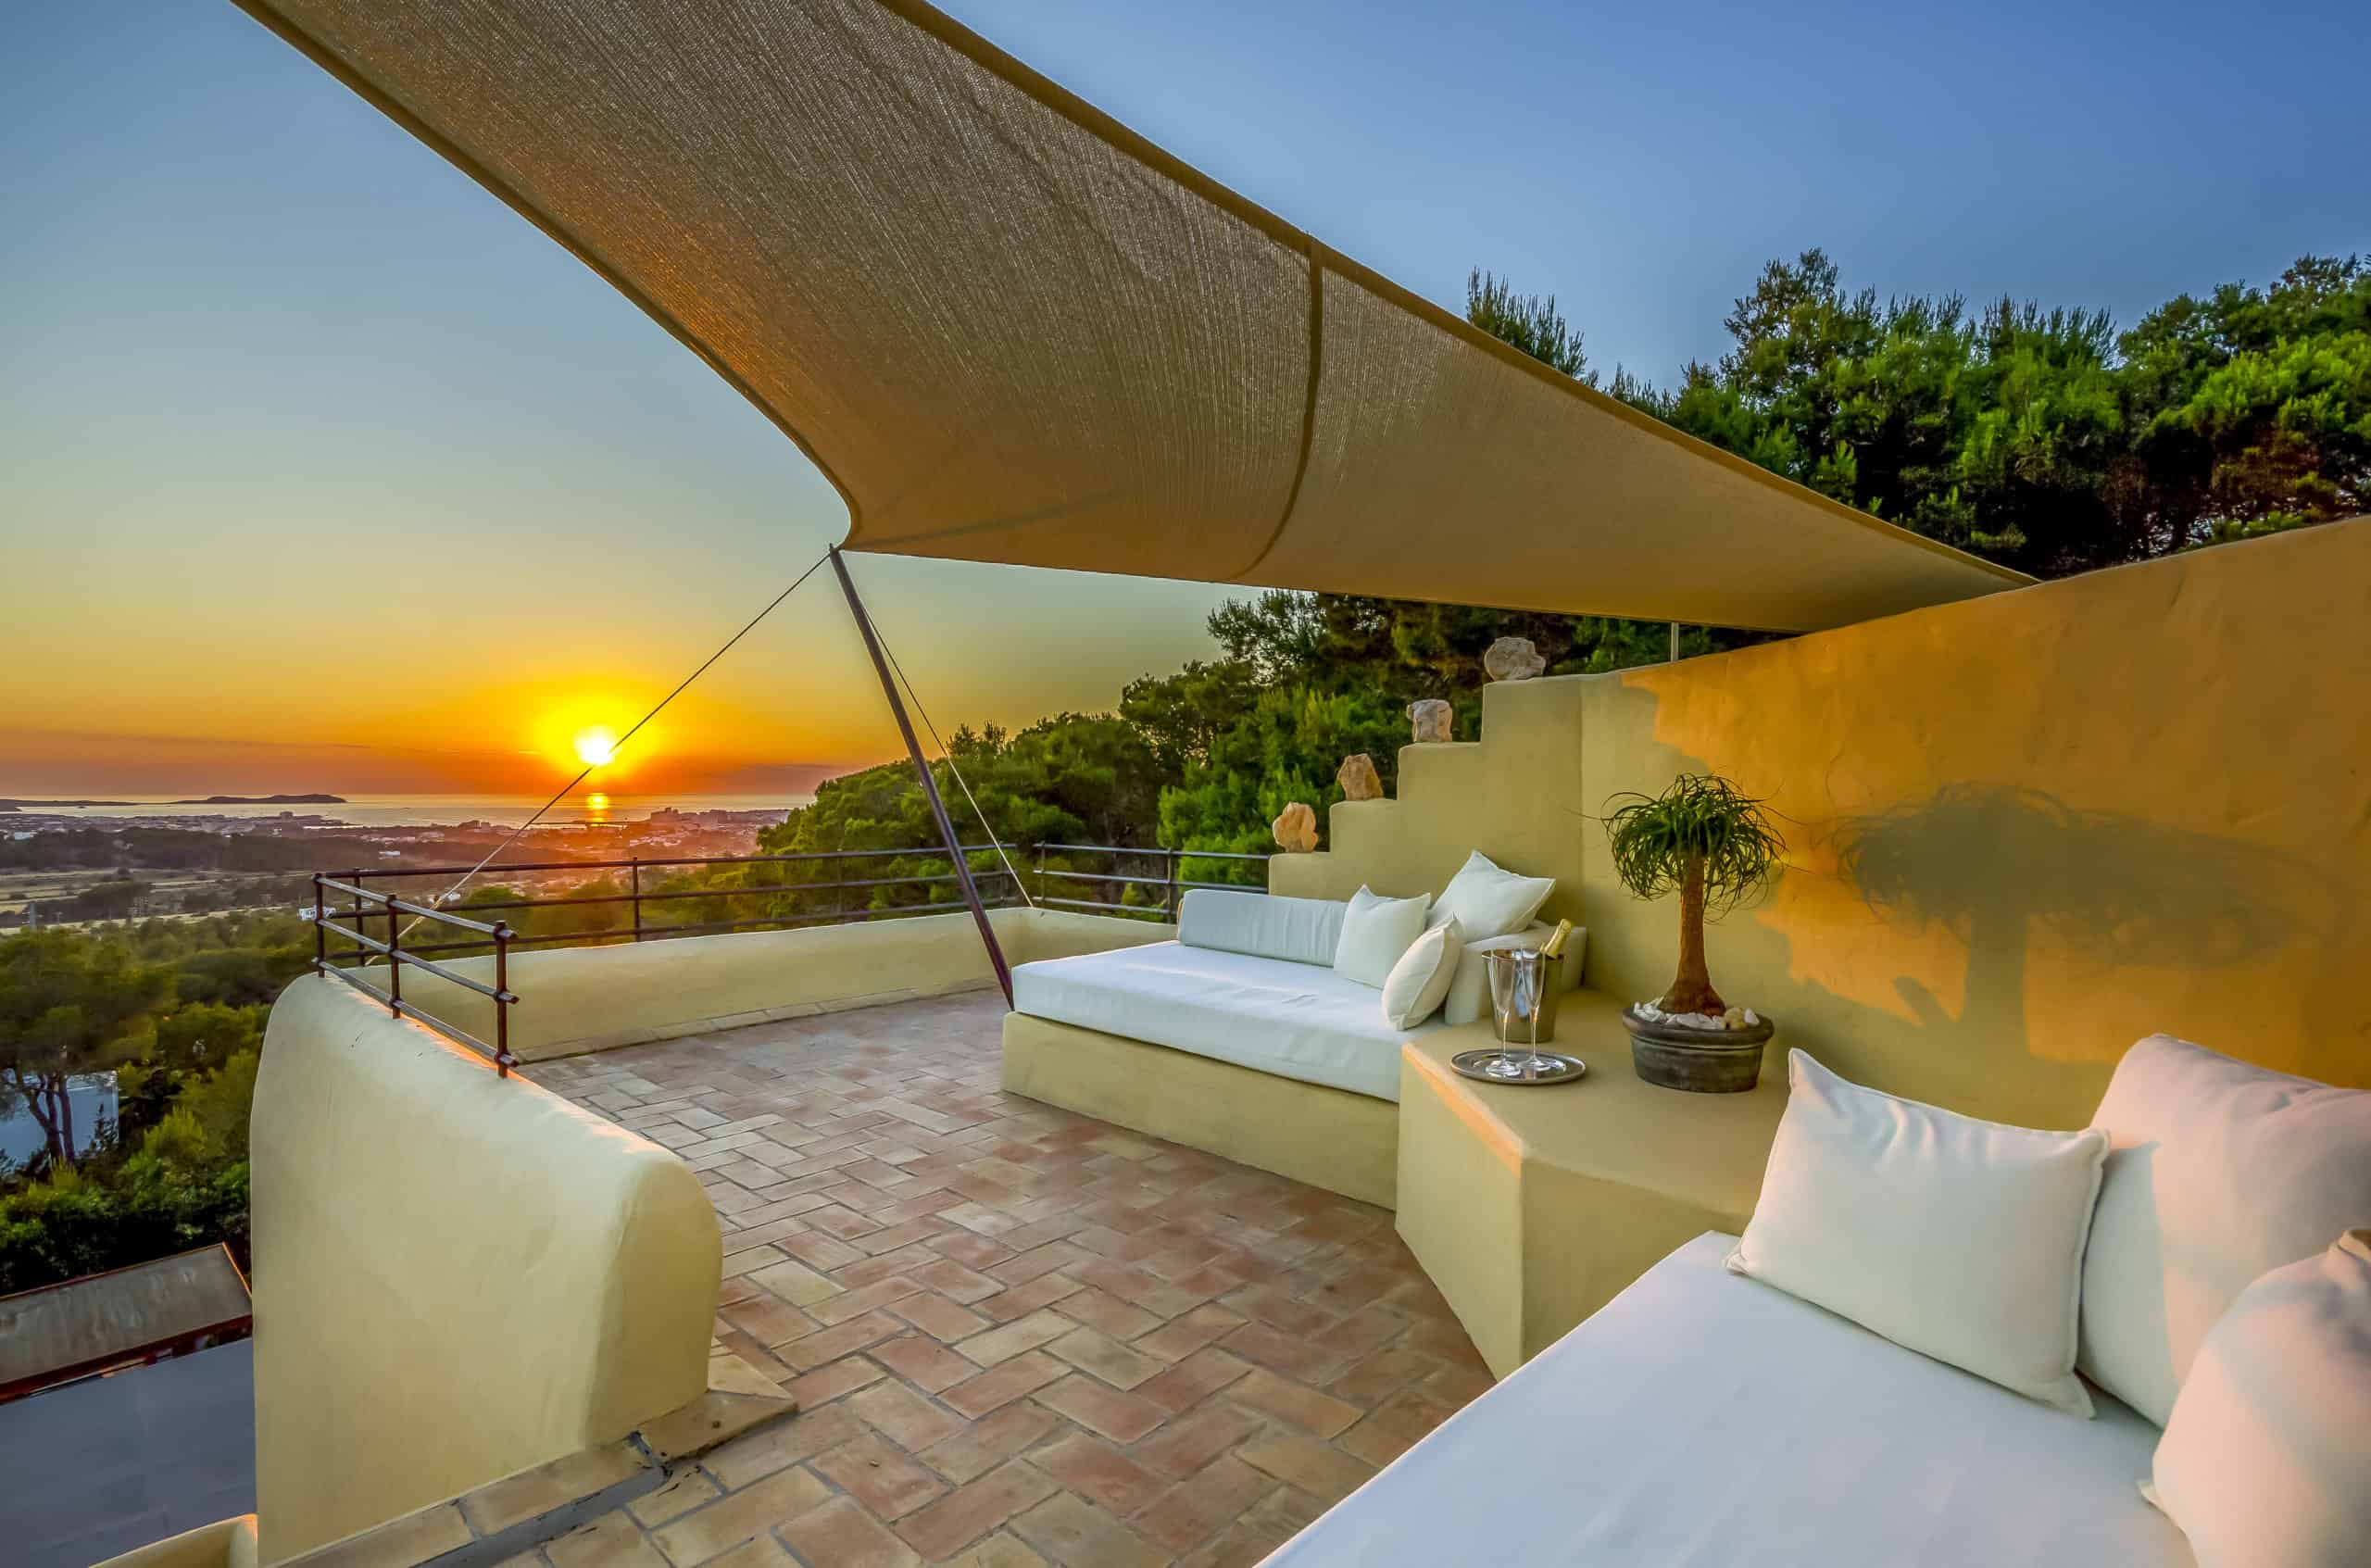 villa rental in ibiza with 4 bedrooms and sunset with Balearic Bliss